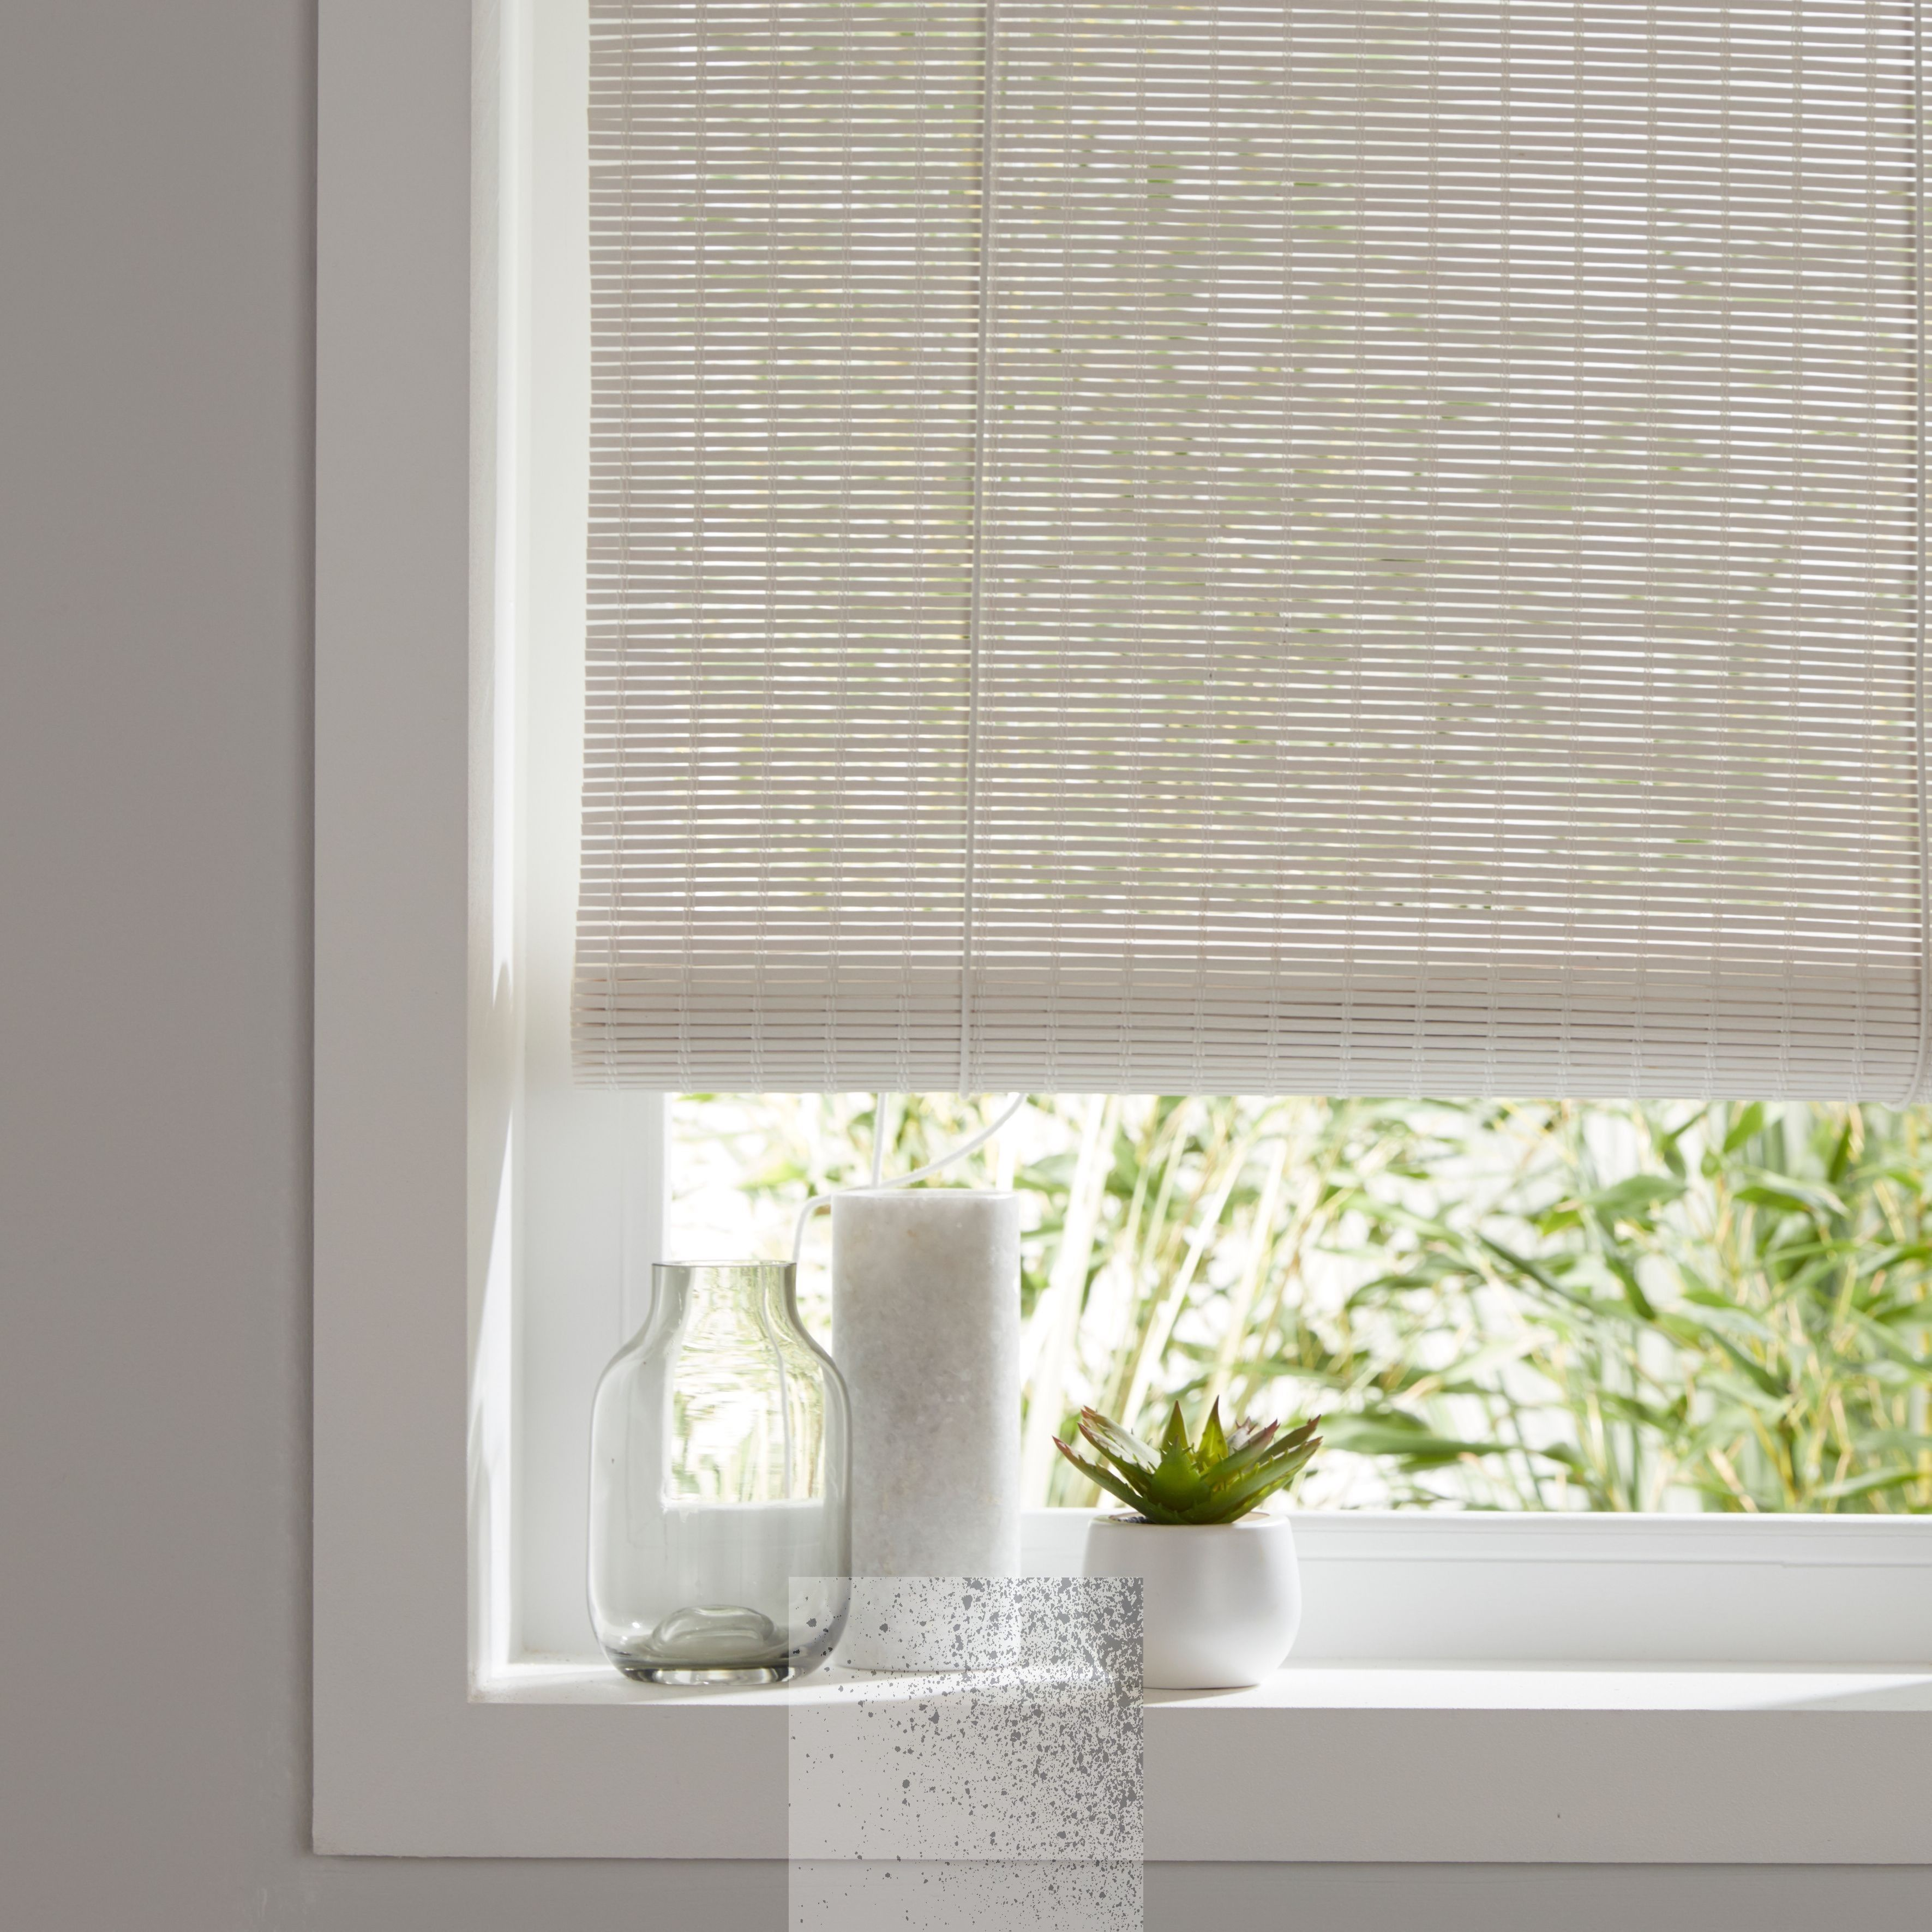 Wonderful diy ideas patio blinds porches roller blinds coverdiy